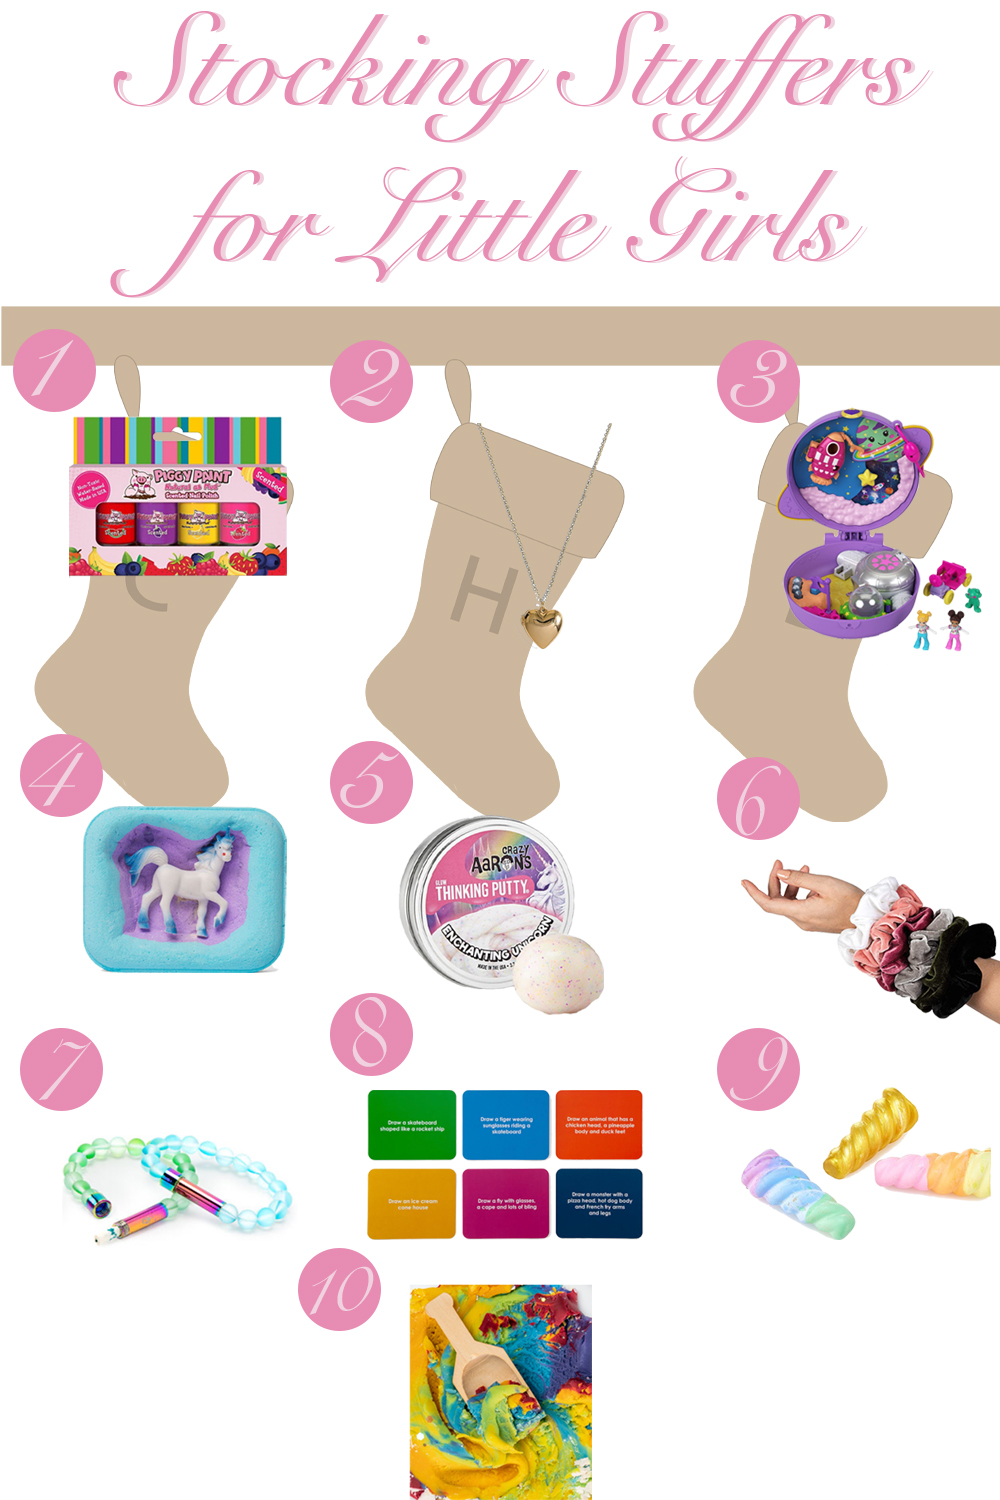 Stocking Stuffers for Little Girls Ages 4-7 - Polly Pocket, Markets, Scrunchies